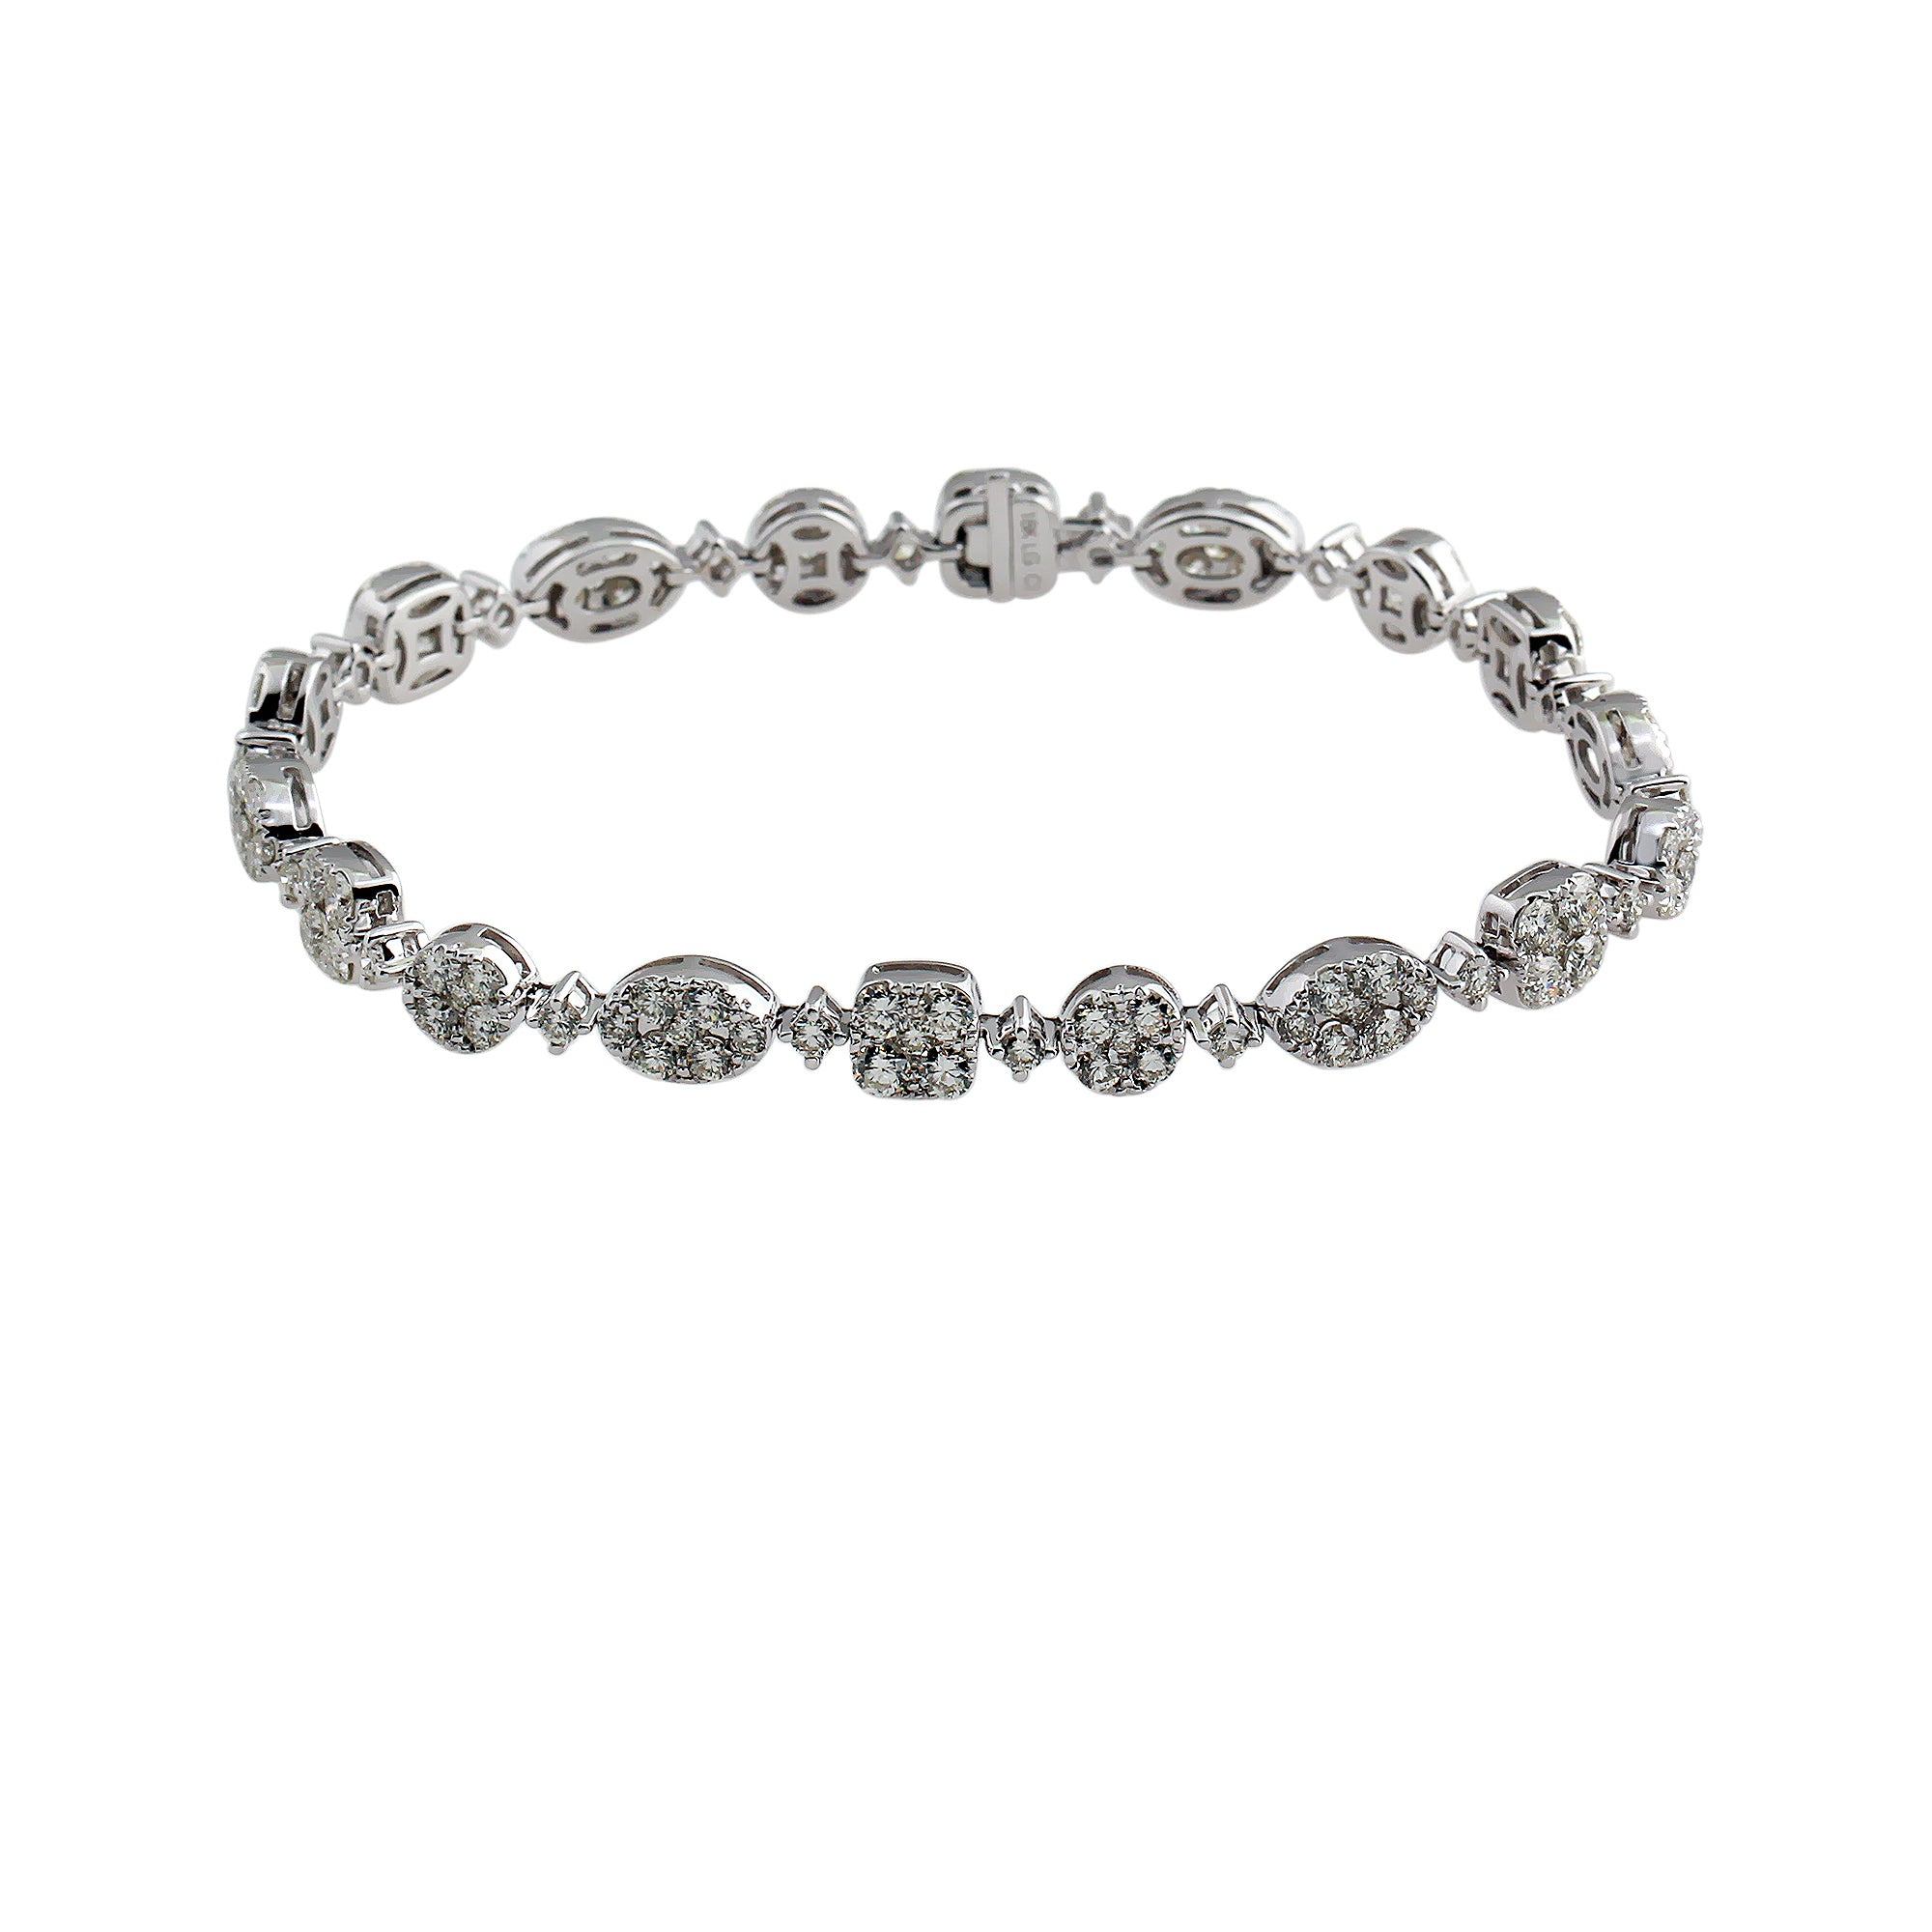 18K White Gold 5.51 CTTW Lab-Grown Diamond Tennis Bracelet